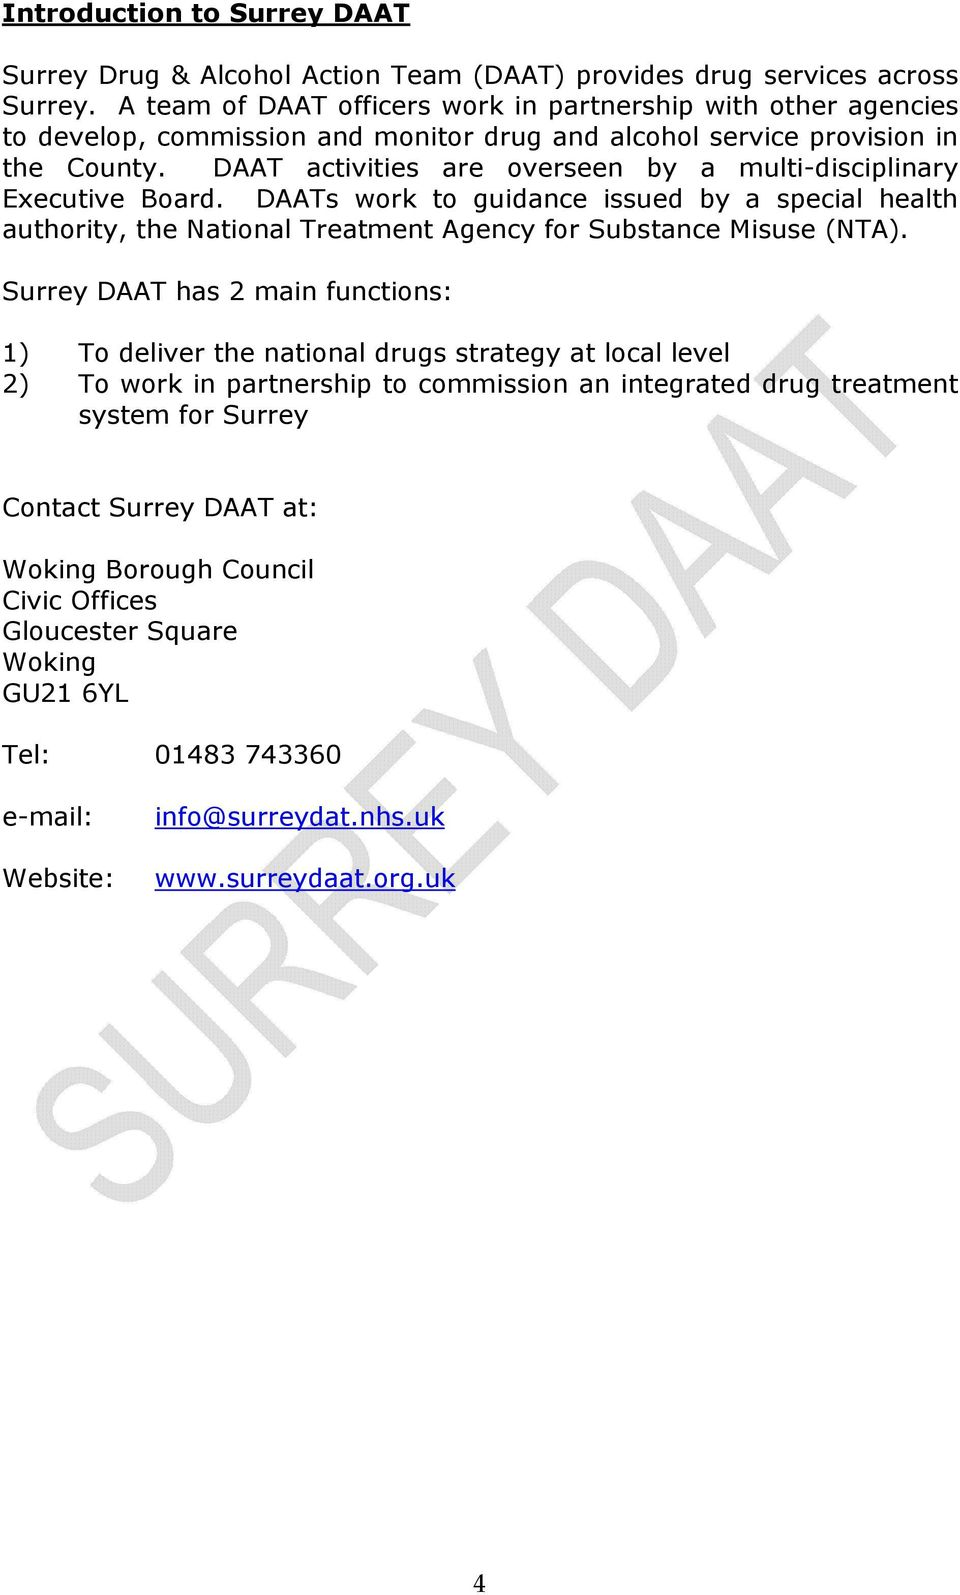 DAAT activities are overseen by a multi-disciplinary Executive Board. DAATs work to guidance issued by a special health authority, the National Treatment Agency for Substance Misuse (NTA).